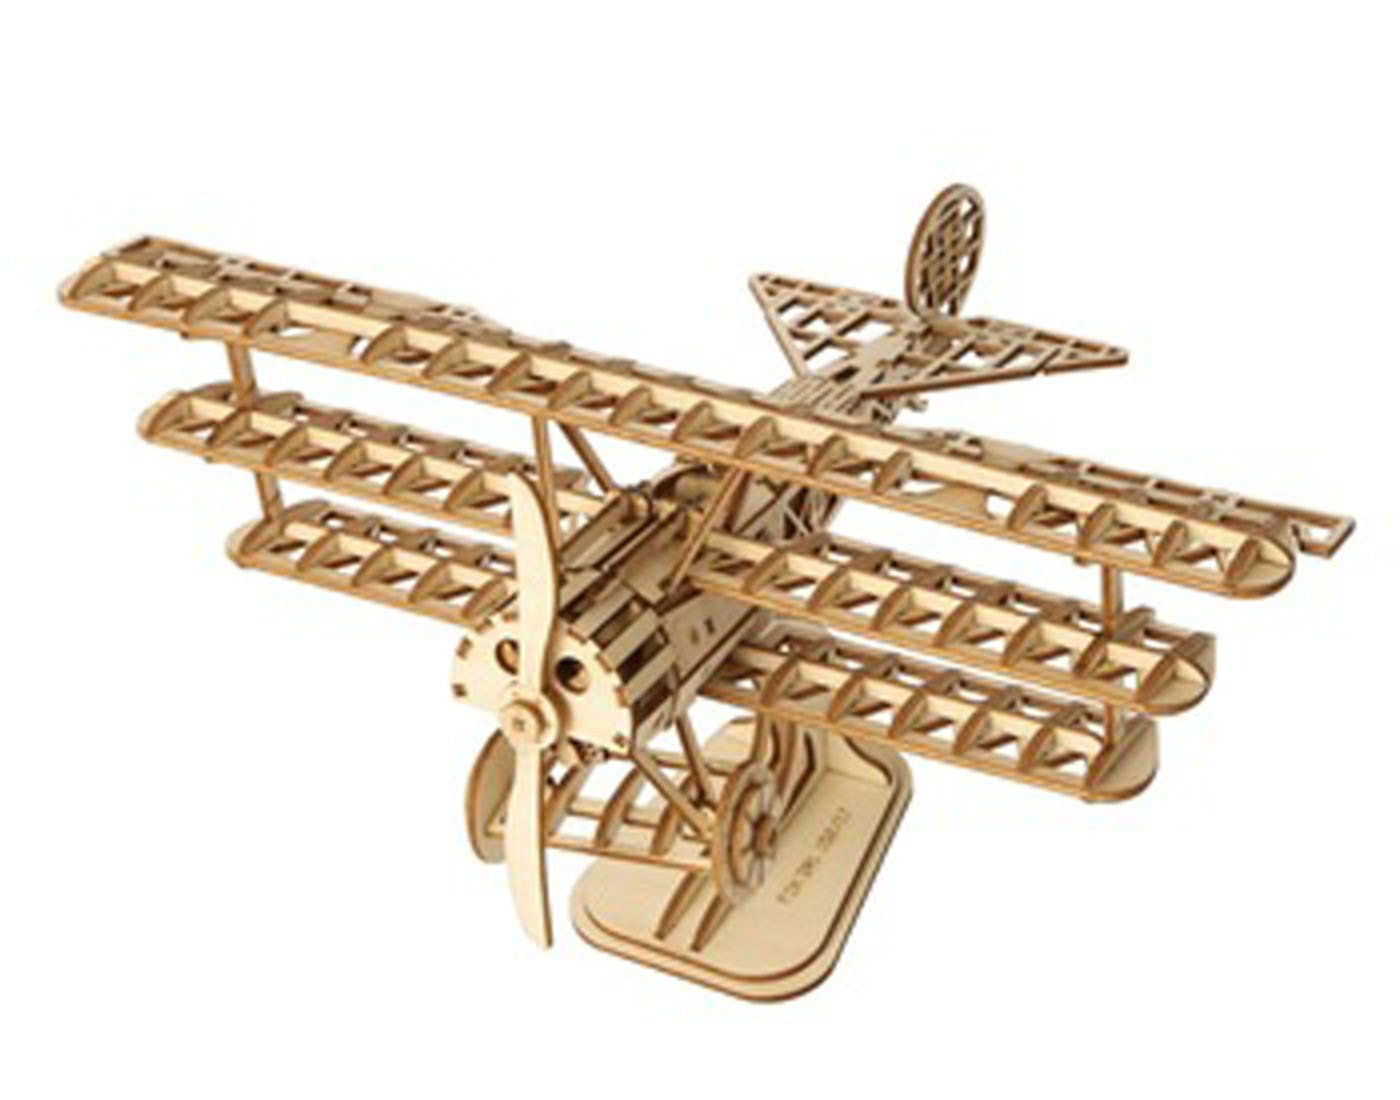 ROBOTIME Wood Craft Kits Unfinished Bi-Plane 3D Laser Cutting Wooden Puzzle Toy for Kids and Adults